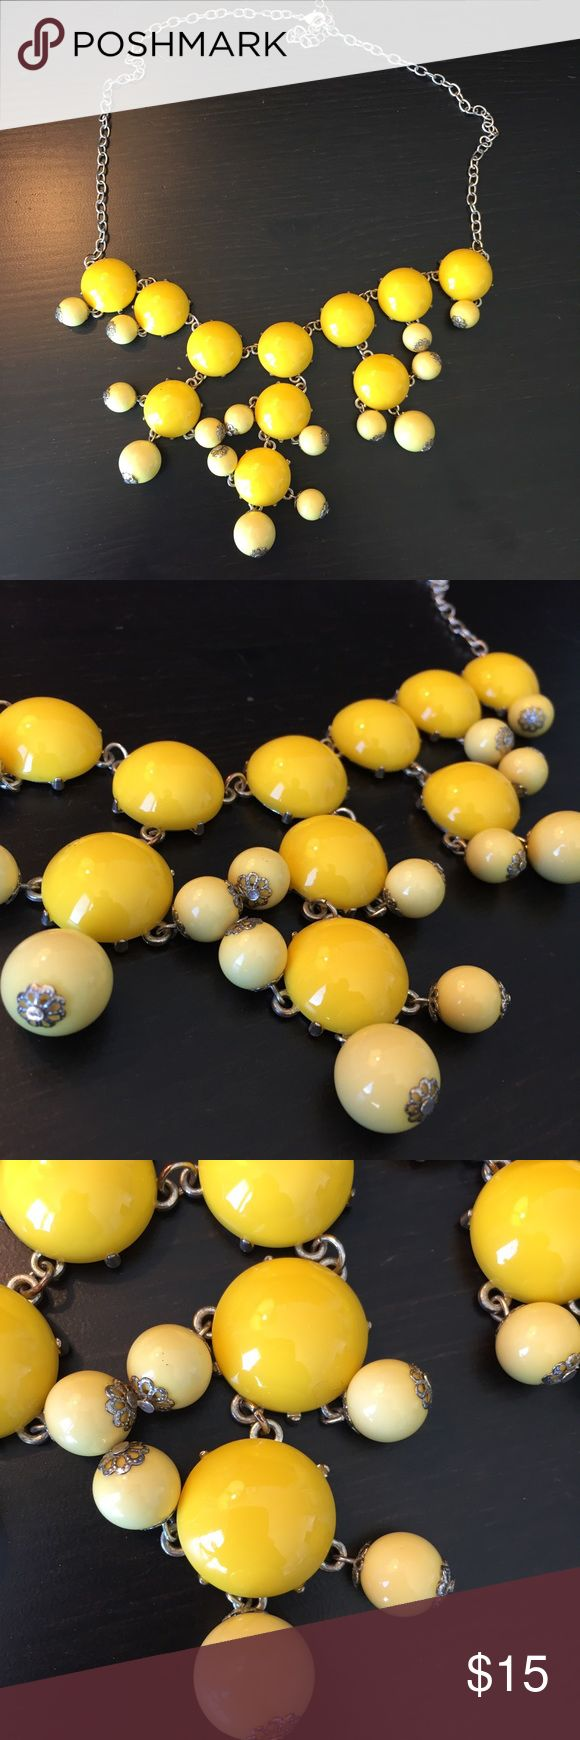 JCrew Bubble Necklace Yellow bubble necklace two toned colored with a bolder yellow and lighter one. J. Crew Jewelry Necklaces